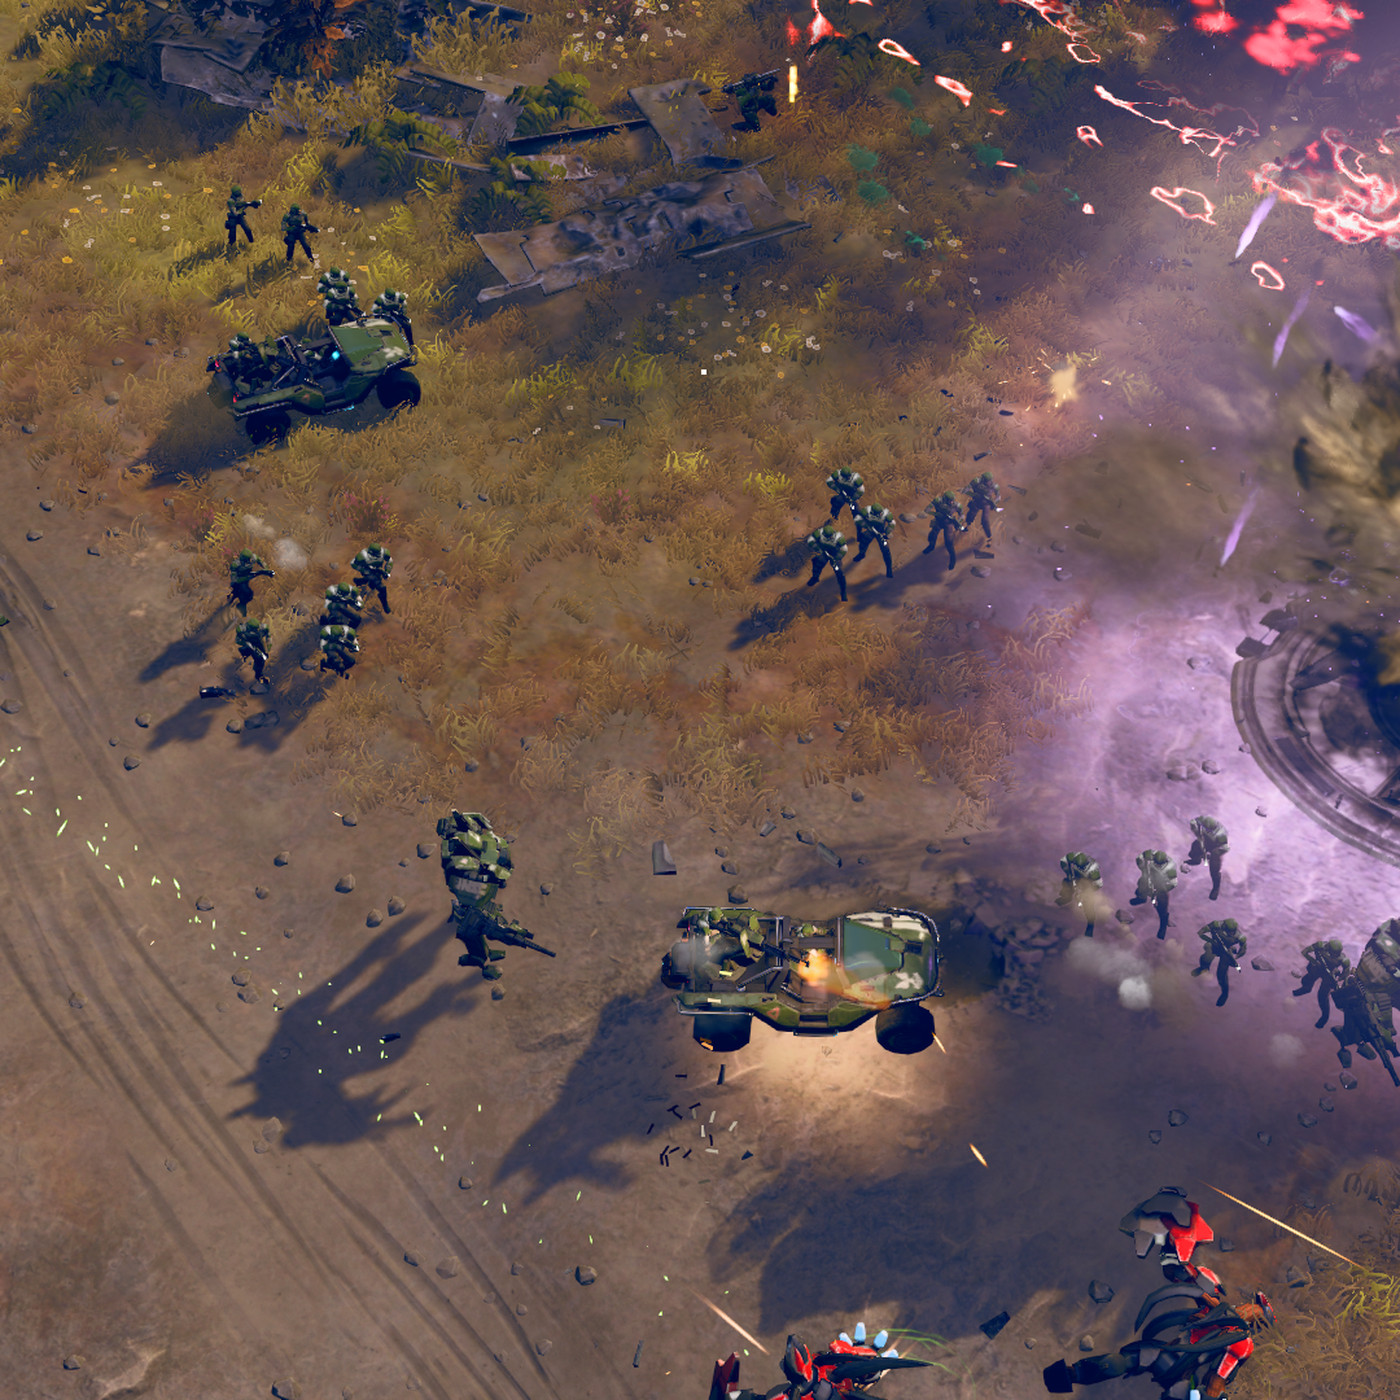 Halo Wars 2 is a real-time strategy game caught between